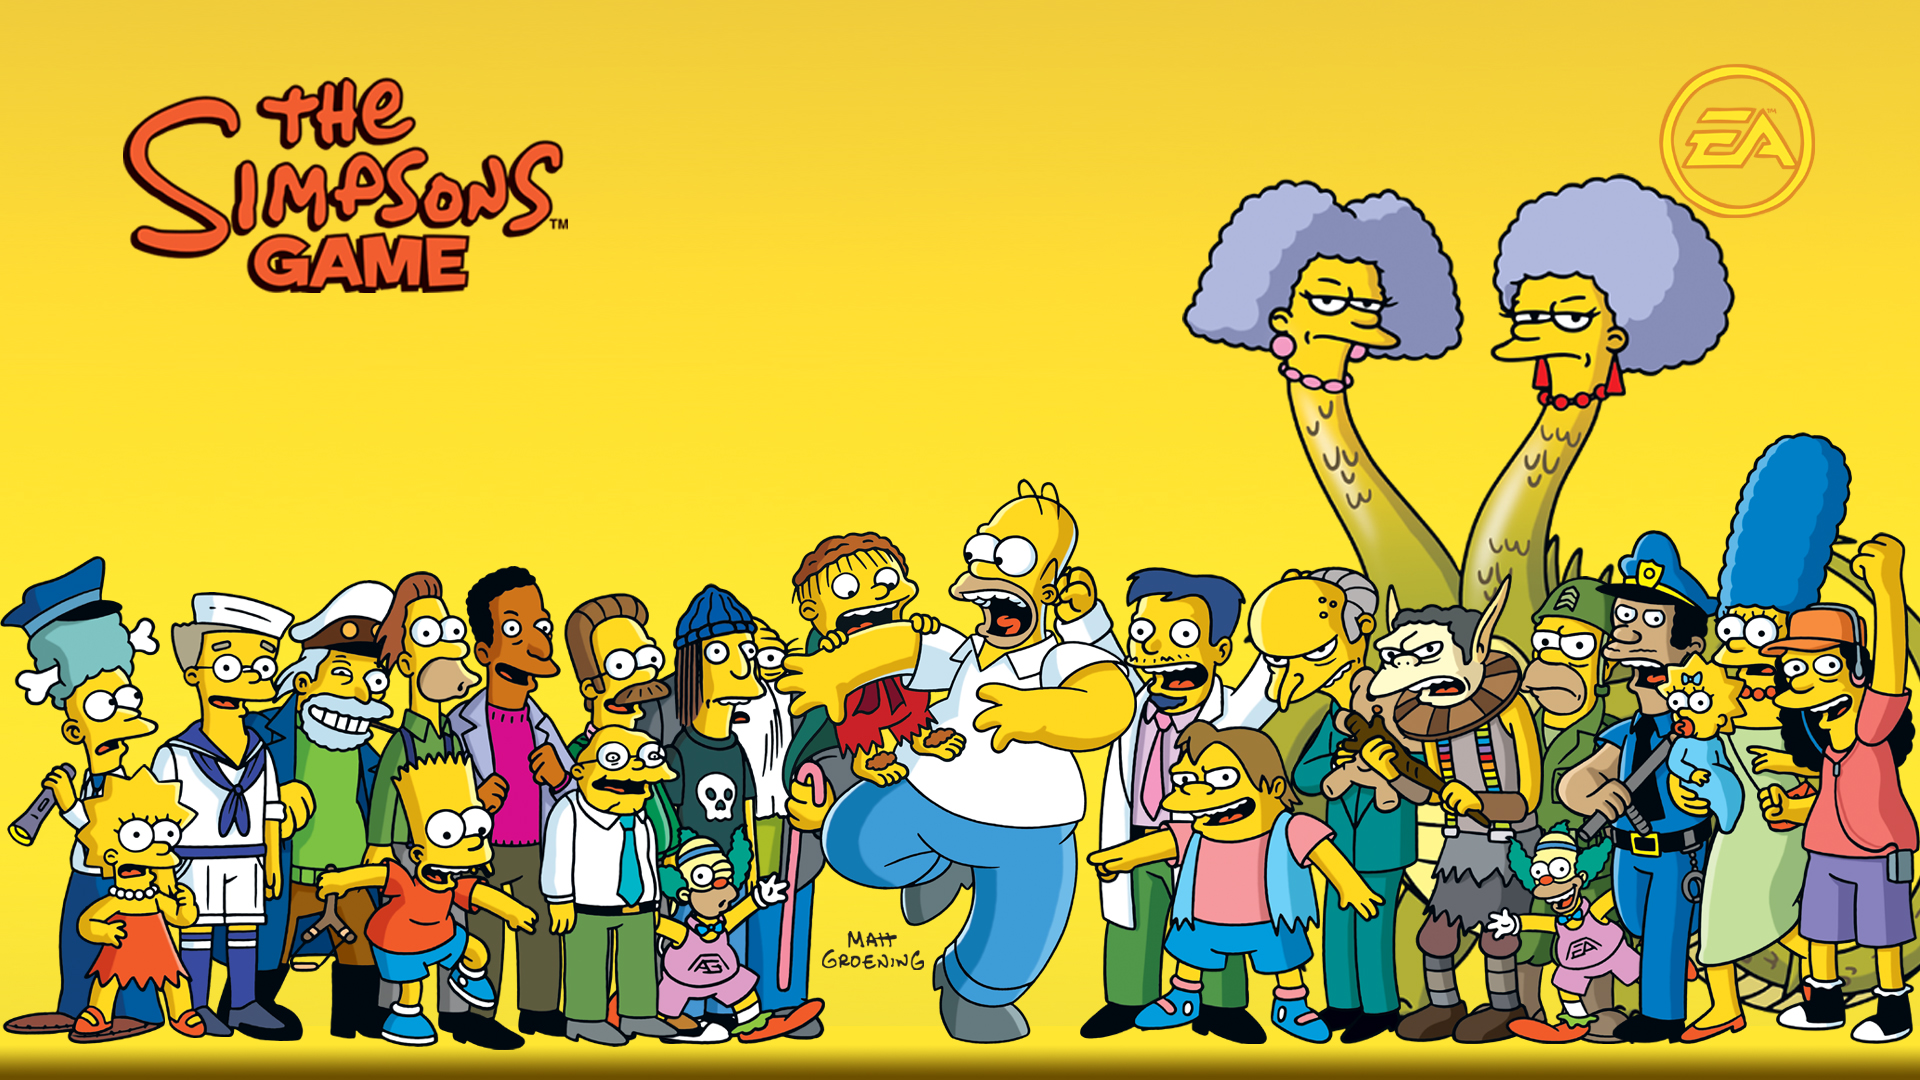 the simpsons game wallpaper 48975